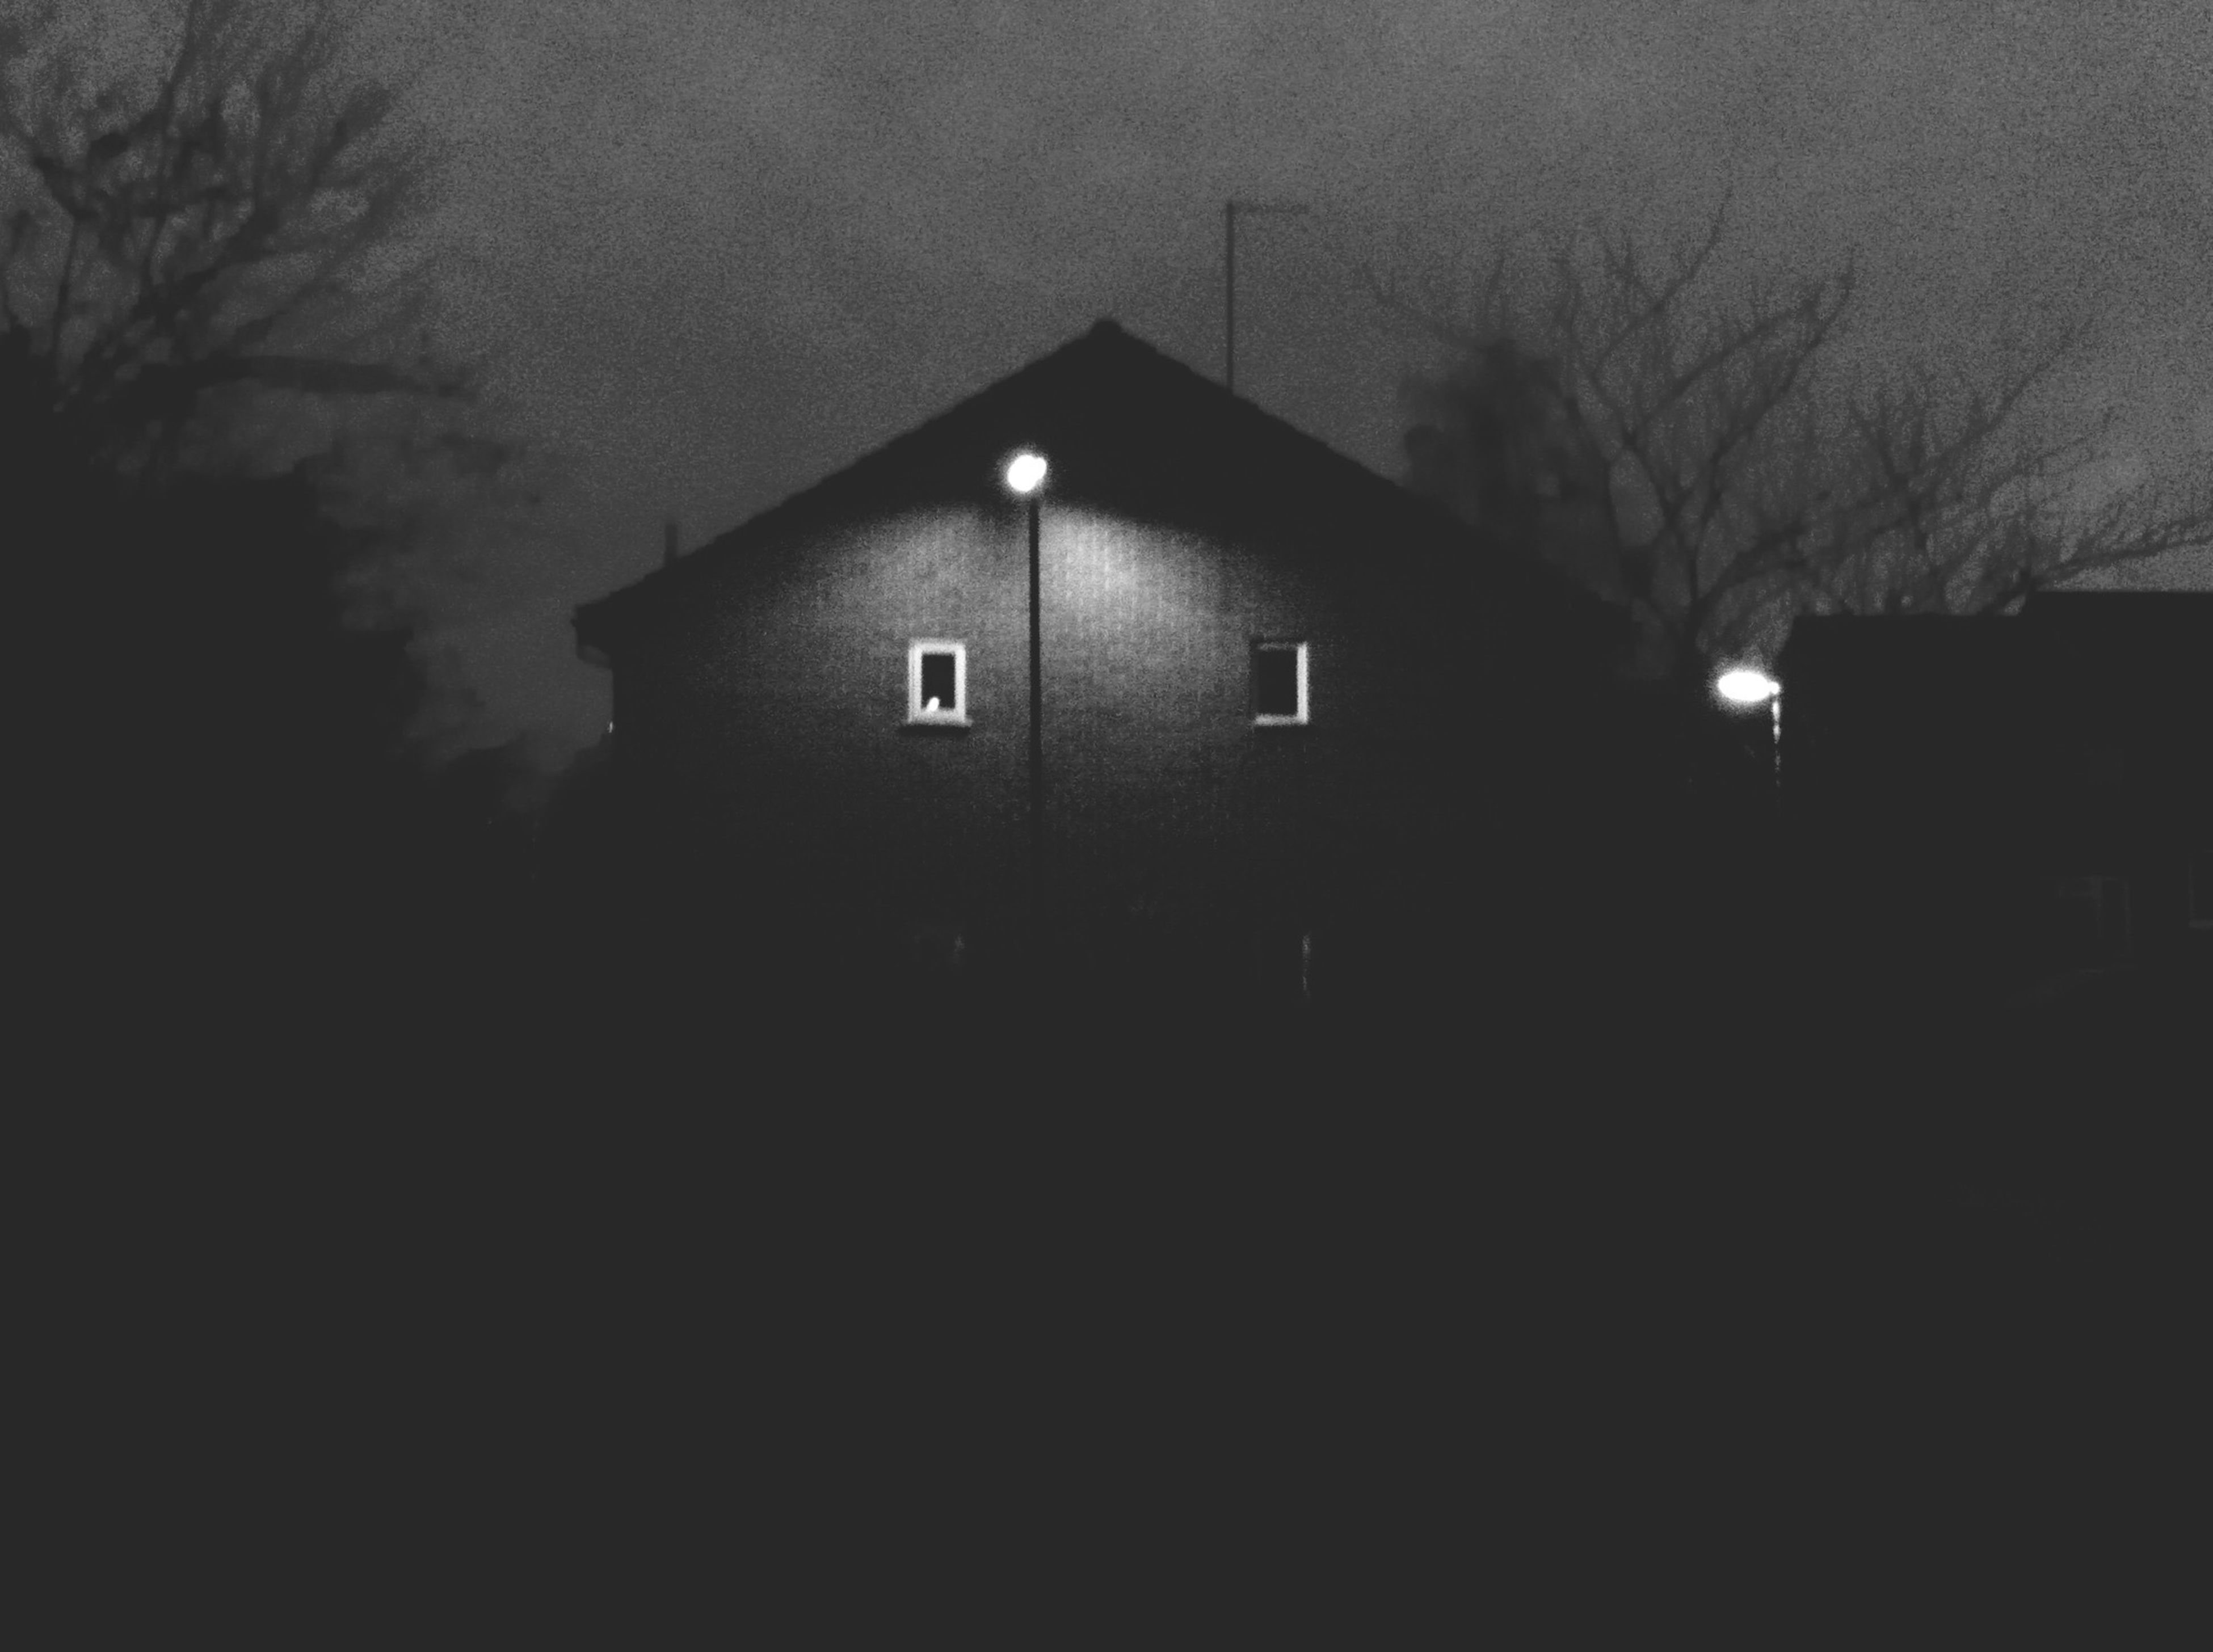 architecture, built structure, building exterior, night, illuminated, low angle view, house, dark, building, residential structure, silhouette, sky, street light, residential building, tree, lighting equipment, outdoors, no people, dusk, window